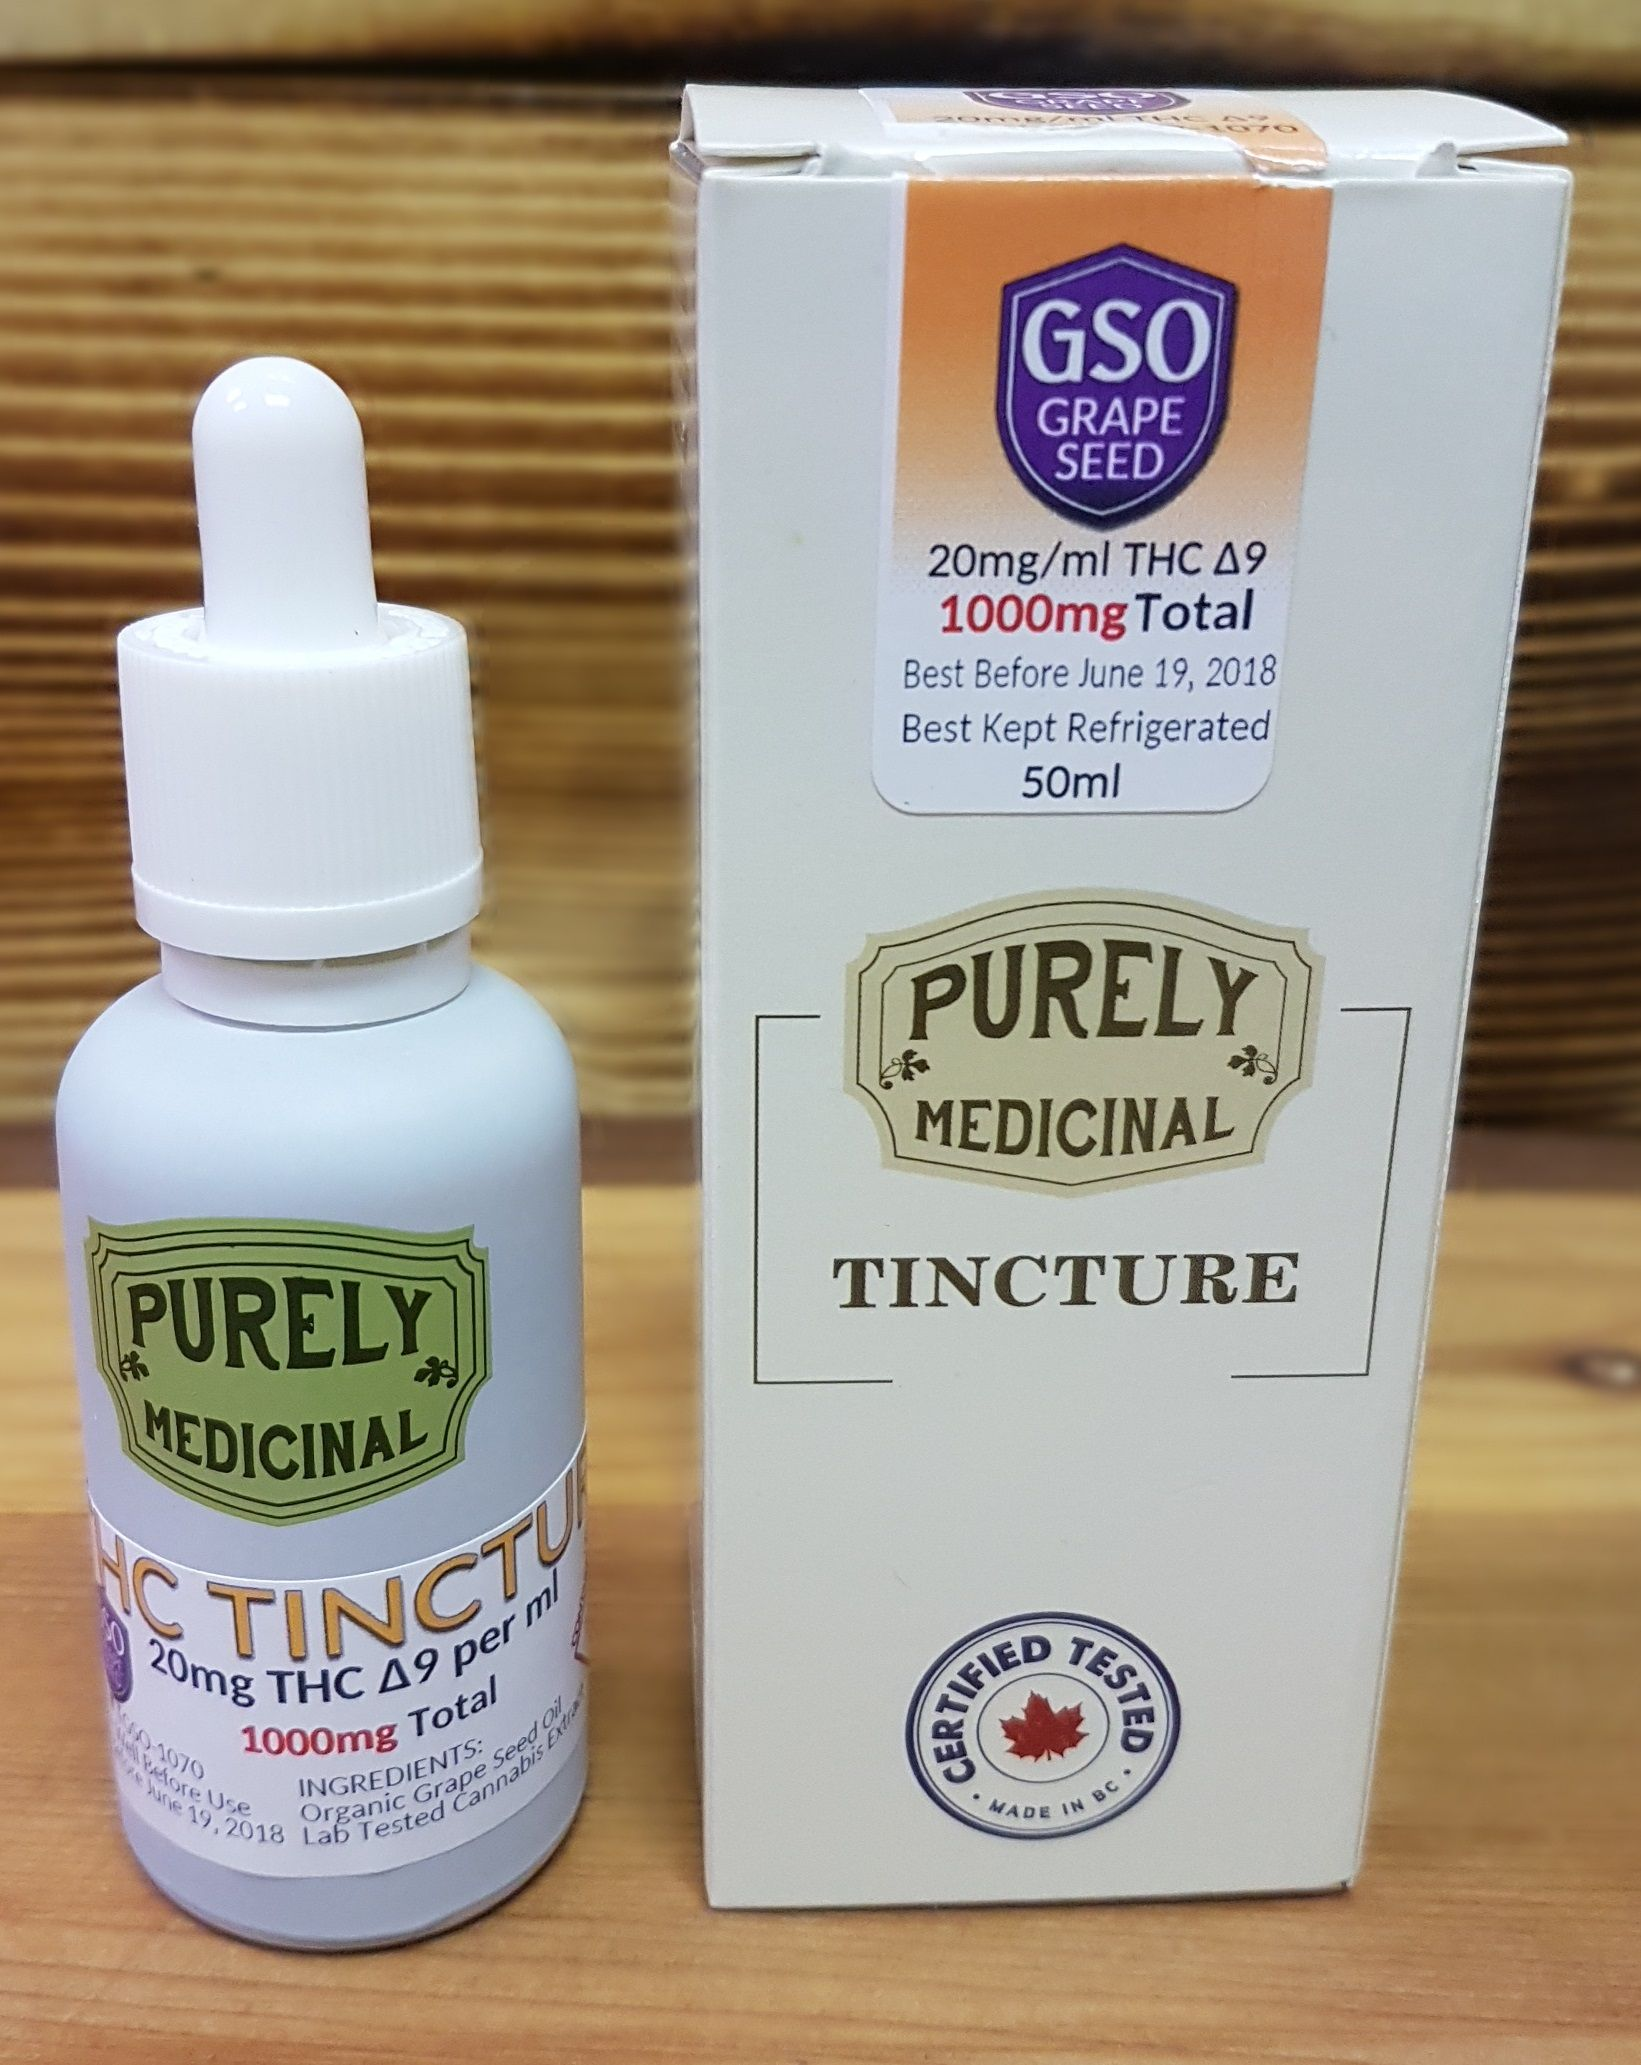 Purely Medicinal THC Tincture GSO 50ml